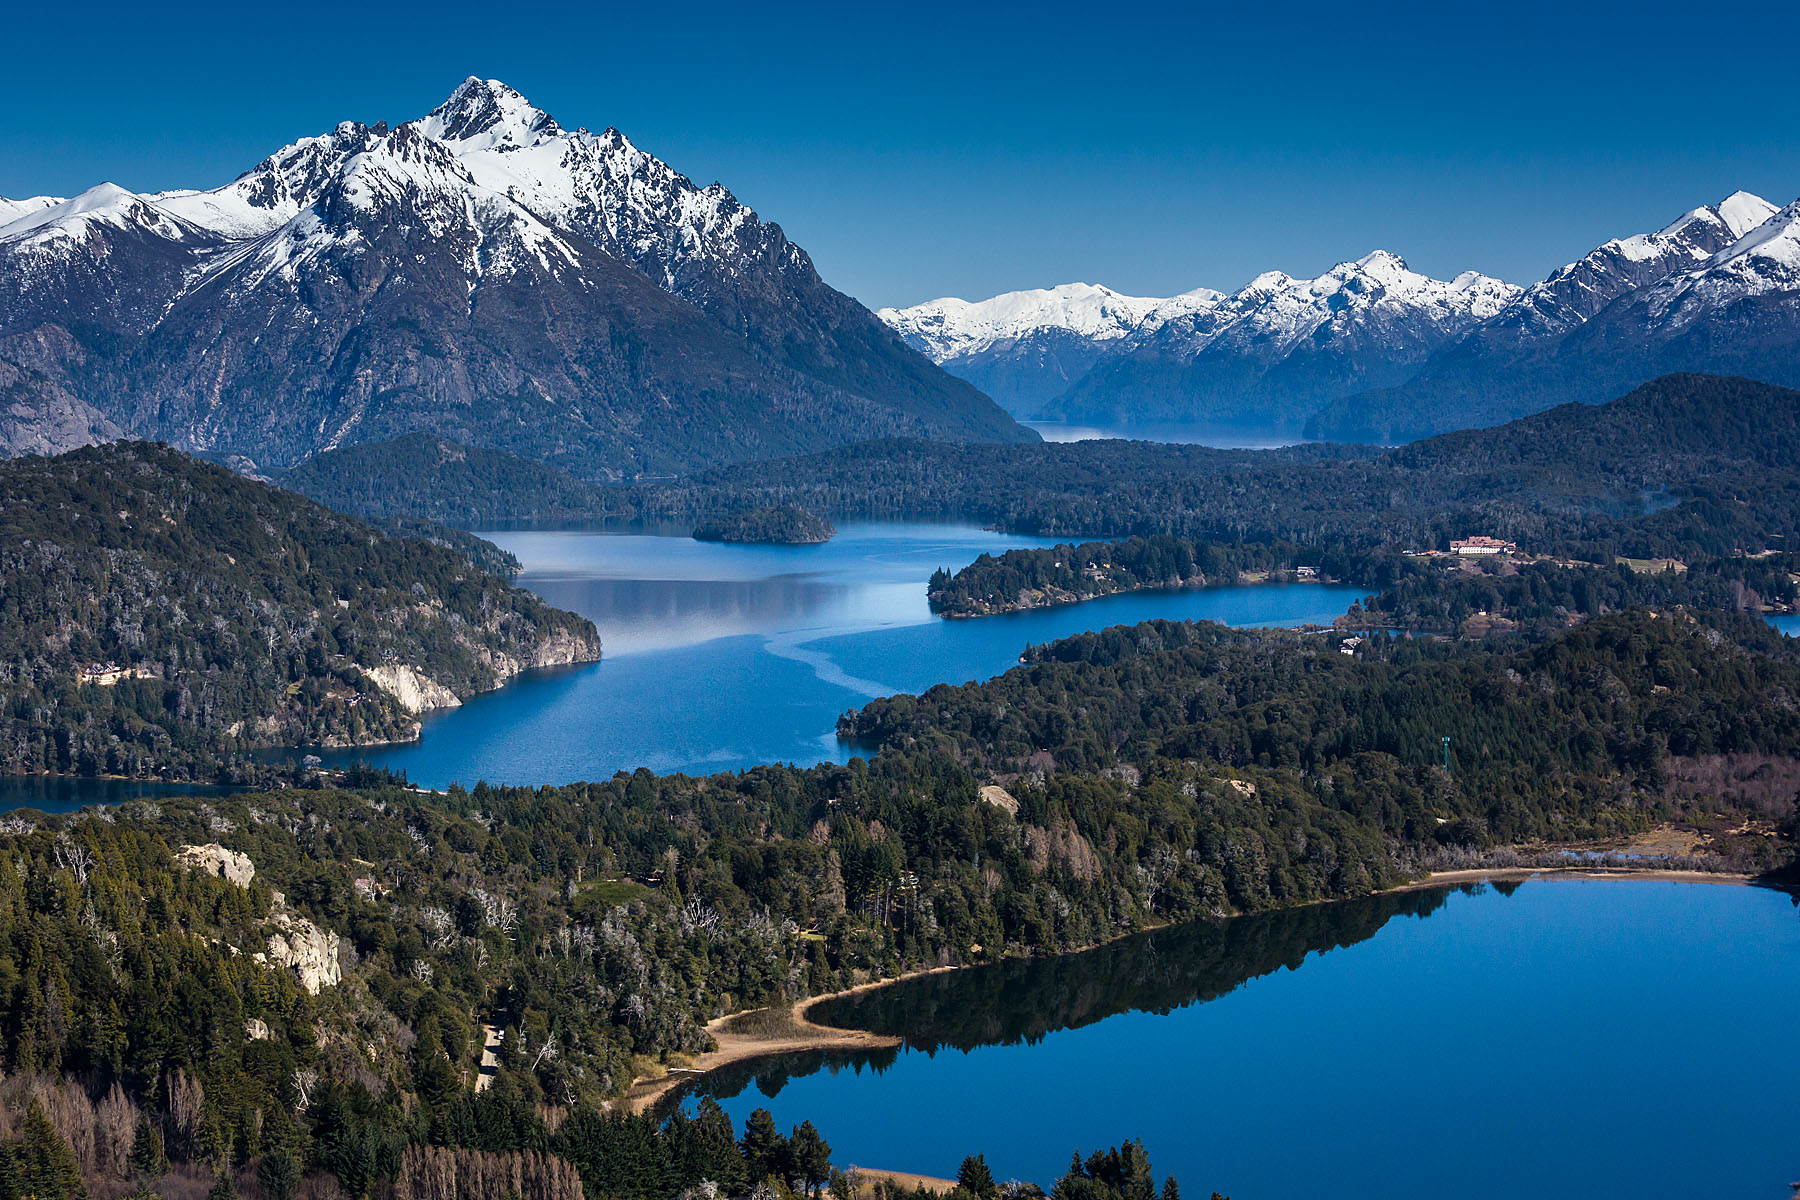 Bariloche and the Andes Mountains in Nahuel Huapi National Park, Argentina